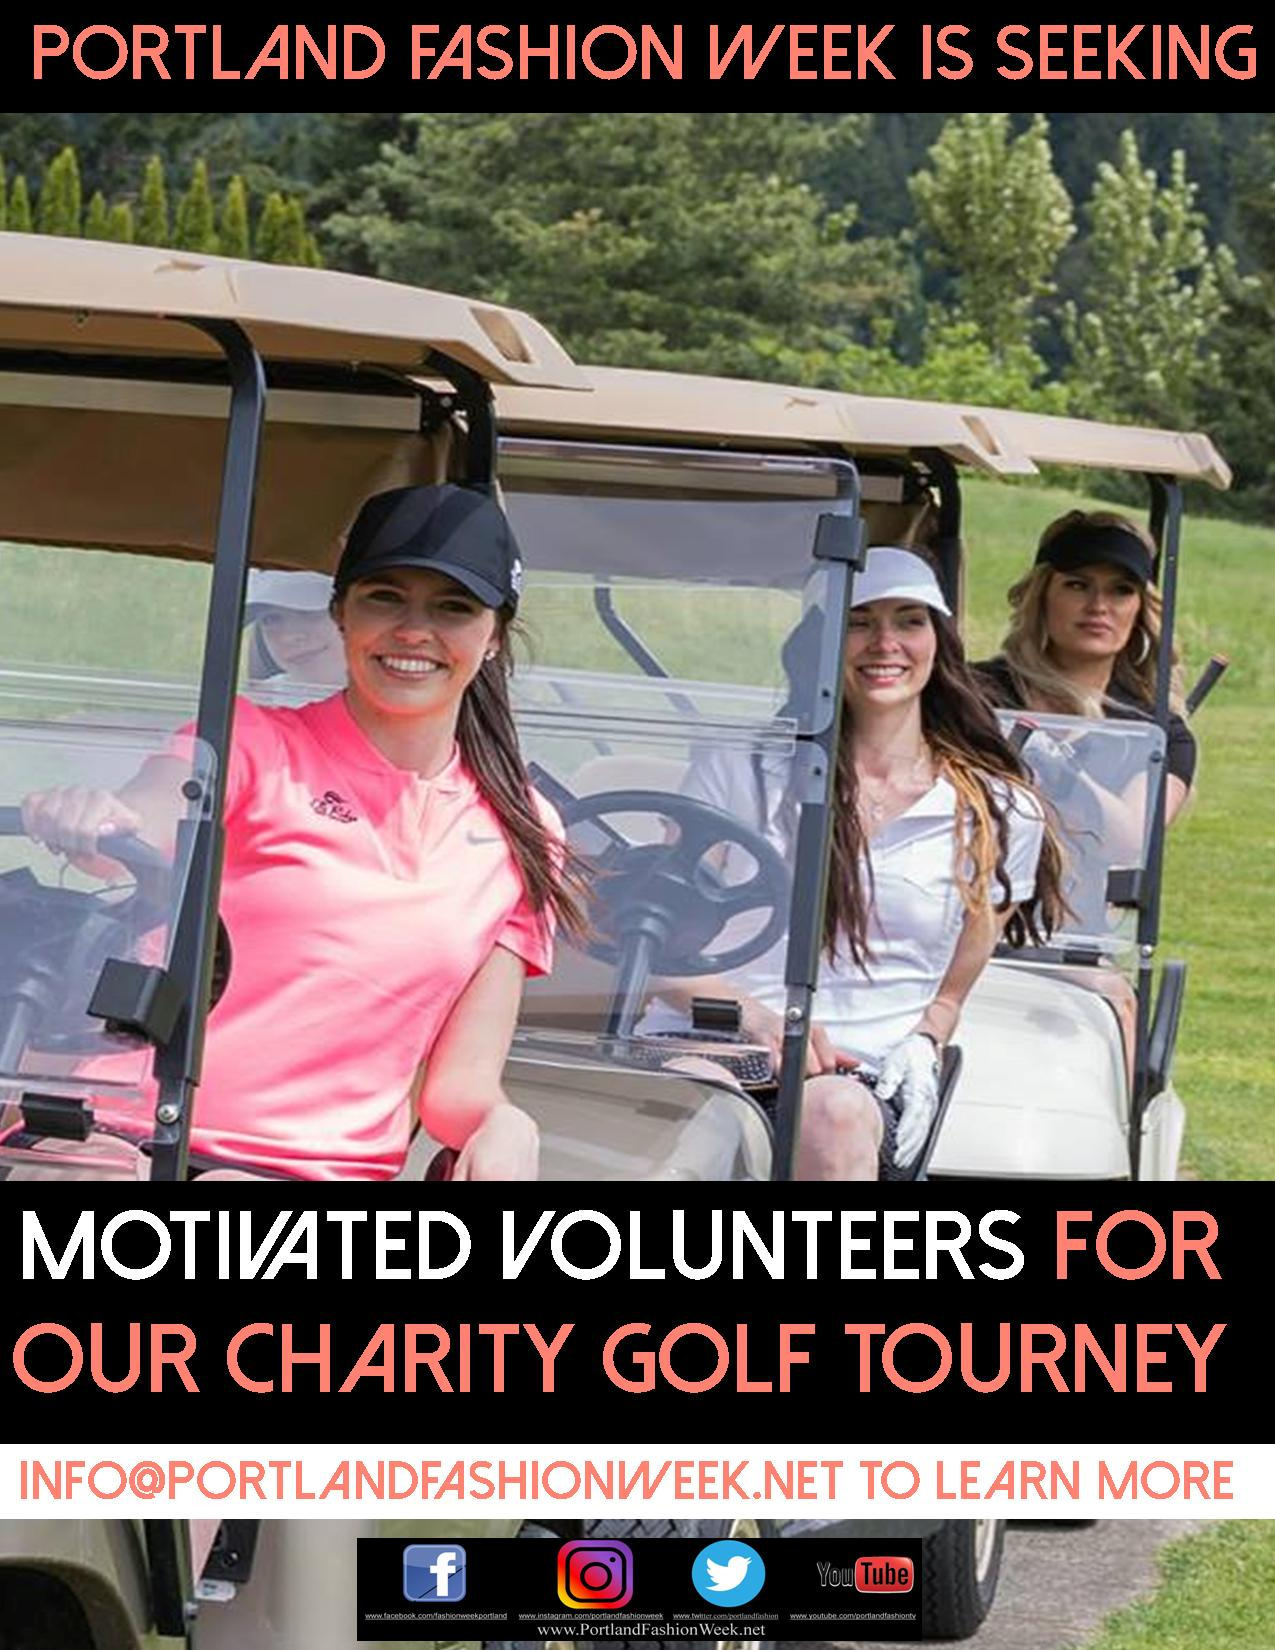 """Four! - Portland Fashion Week is seeking a few top notch volunteers to help with our 3rd Annual Charity Golf Tourney July 27, 2019 from the beautiful Elk Ridge Golf Course in Carson, WA.!Dinner, drinks, dancing and golf provided for our support teams and our """"All You Can Eat Bloody Mary Bar"""" is purely decadent!Since 2017 we have featured over $125,000.00 in cash and prizes, including a fully restored 1957 Jaguar XK 12 and thousands in cash bounties on holes in one!Info@PortlandFashionWeek.net to learn more!"""